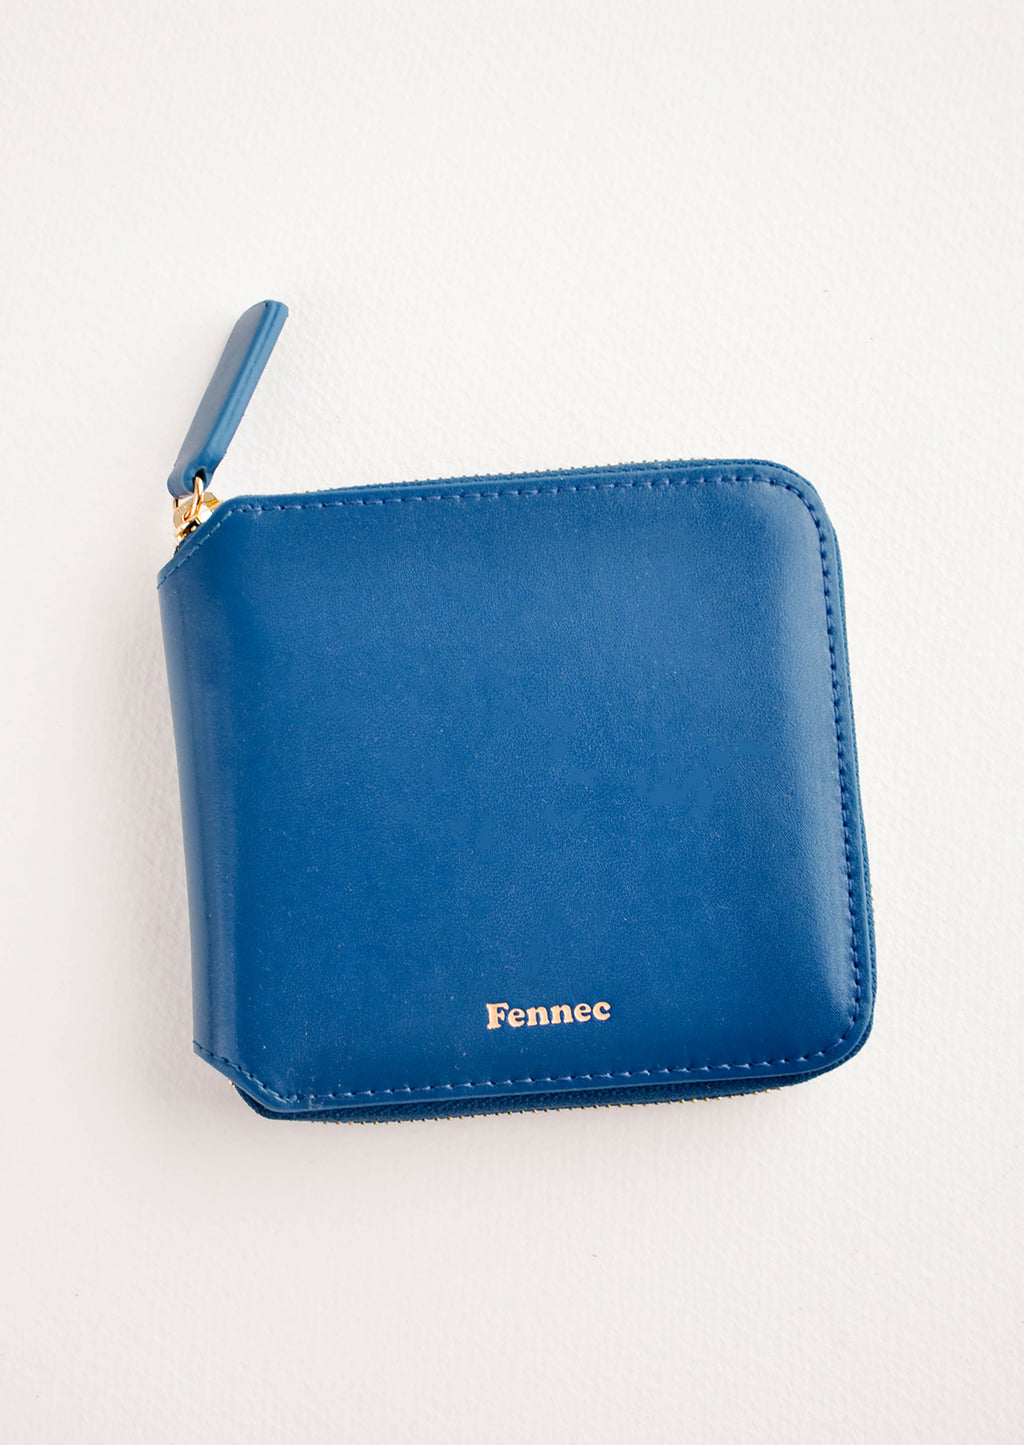 Fennec Zip Wallet